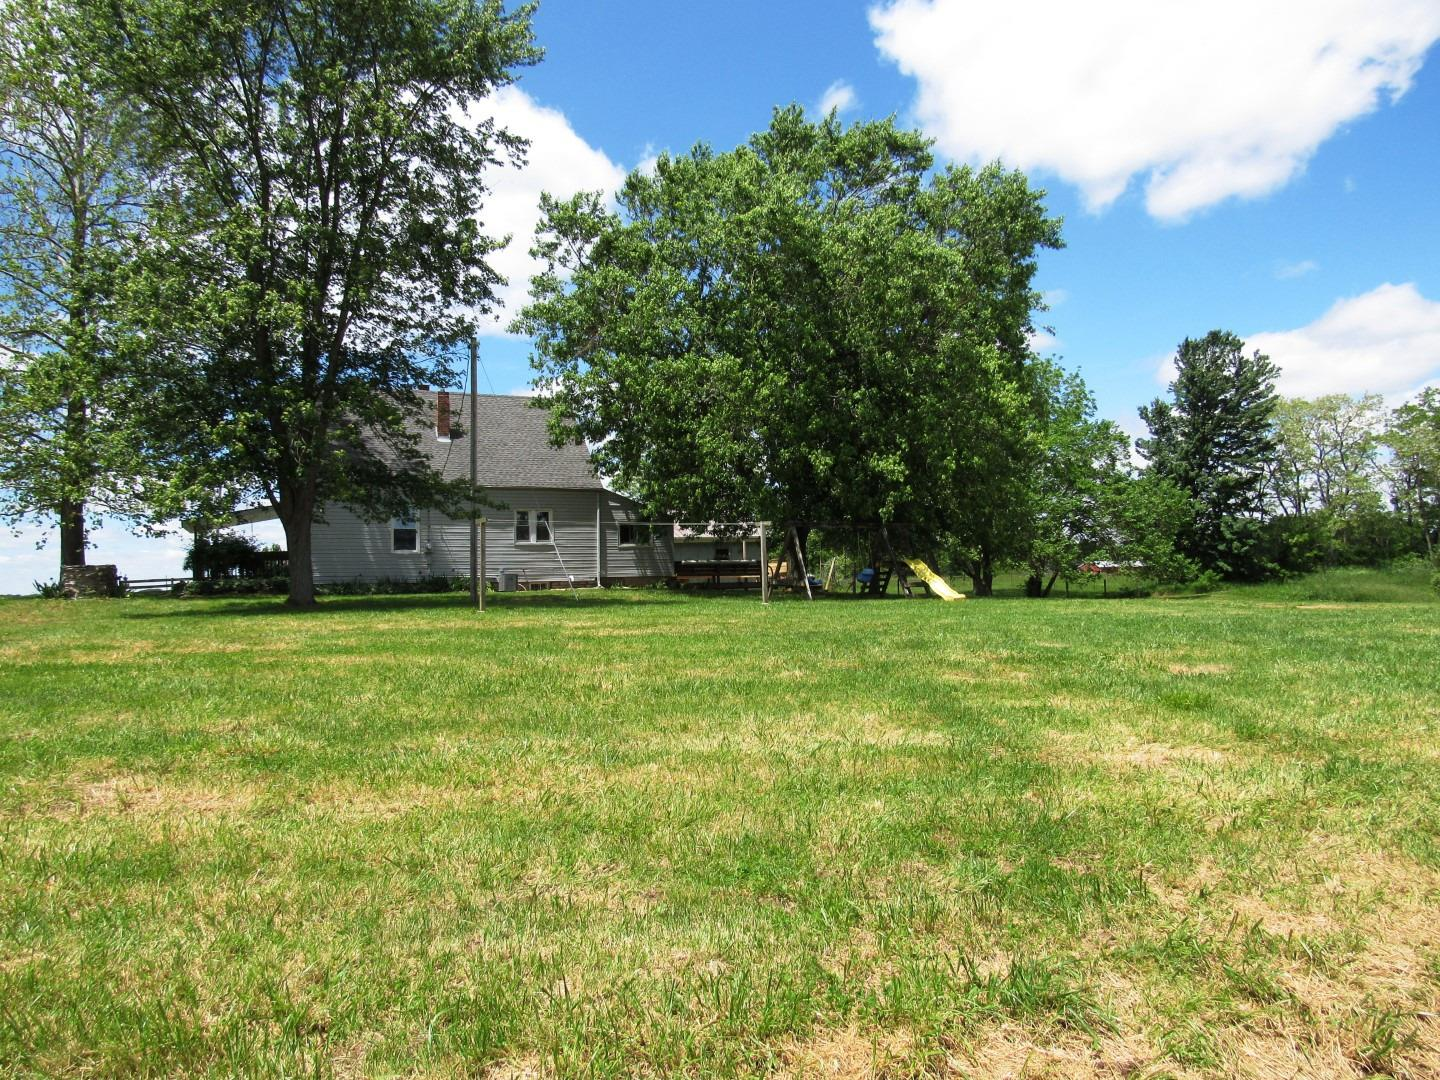 Photo 3 for 7507 E CR 50 S Ripley County, IN 47018